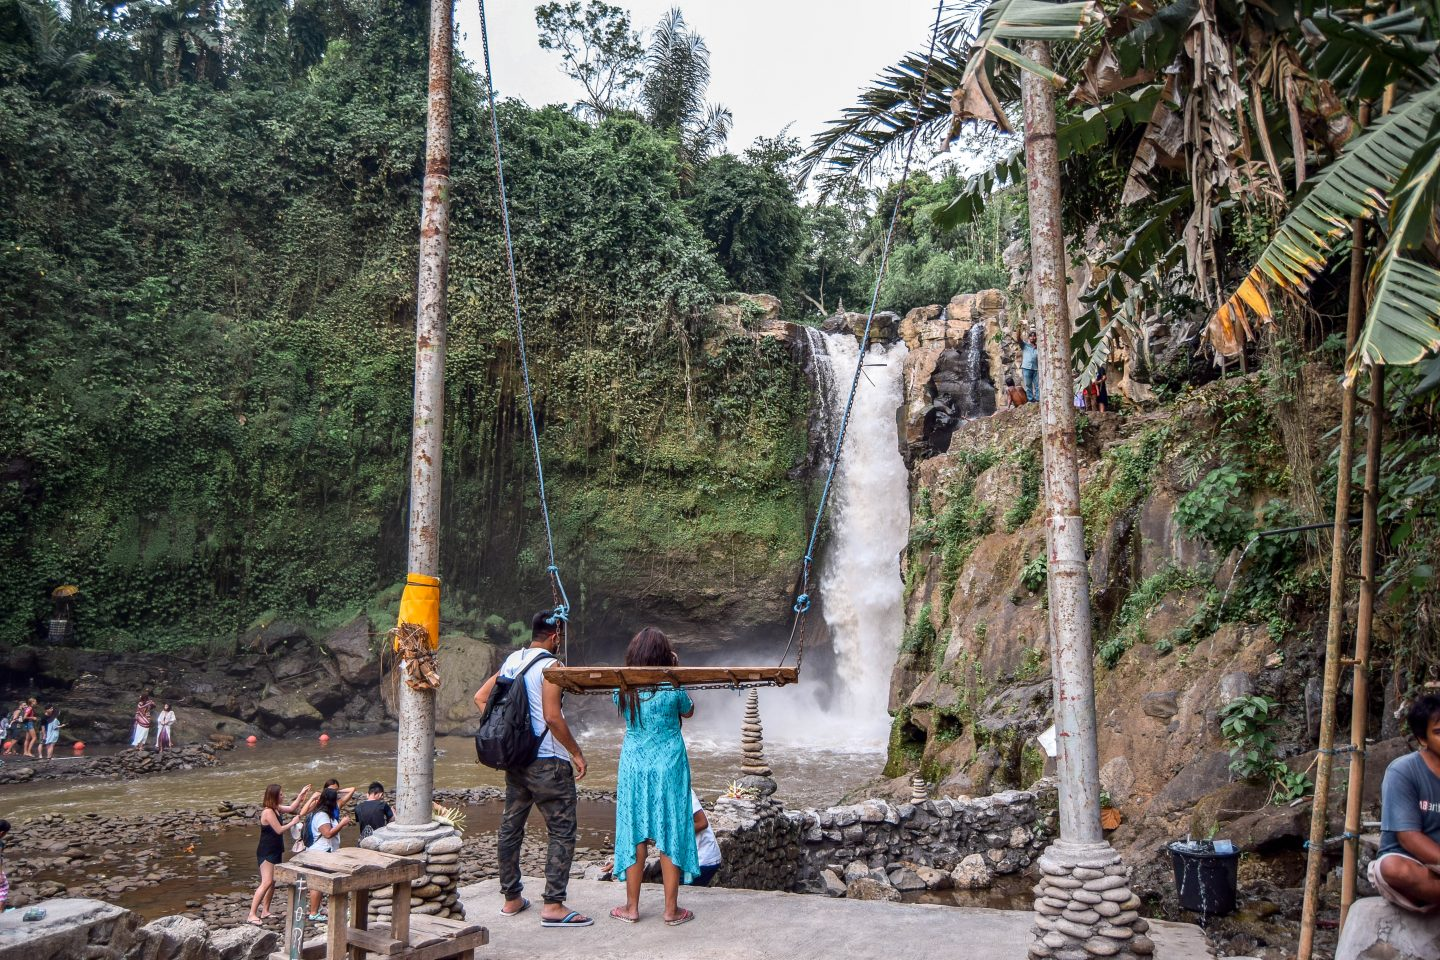 Wanderers & Warriors - Tegenungan Waterfall Bali - All You Need To Know